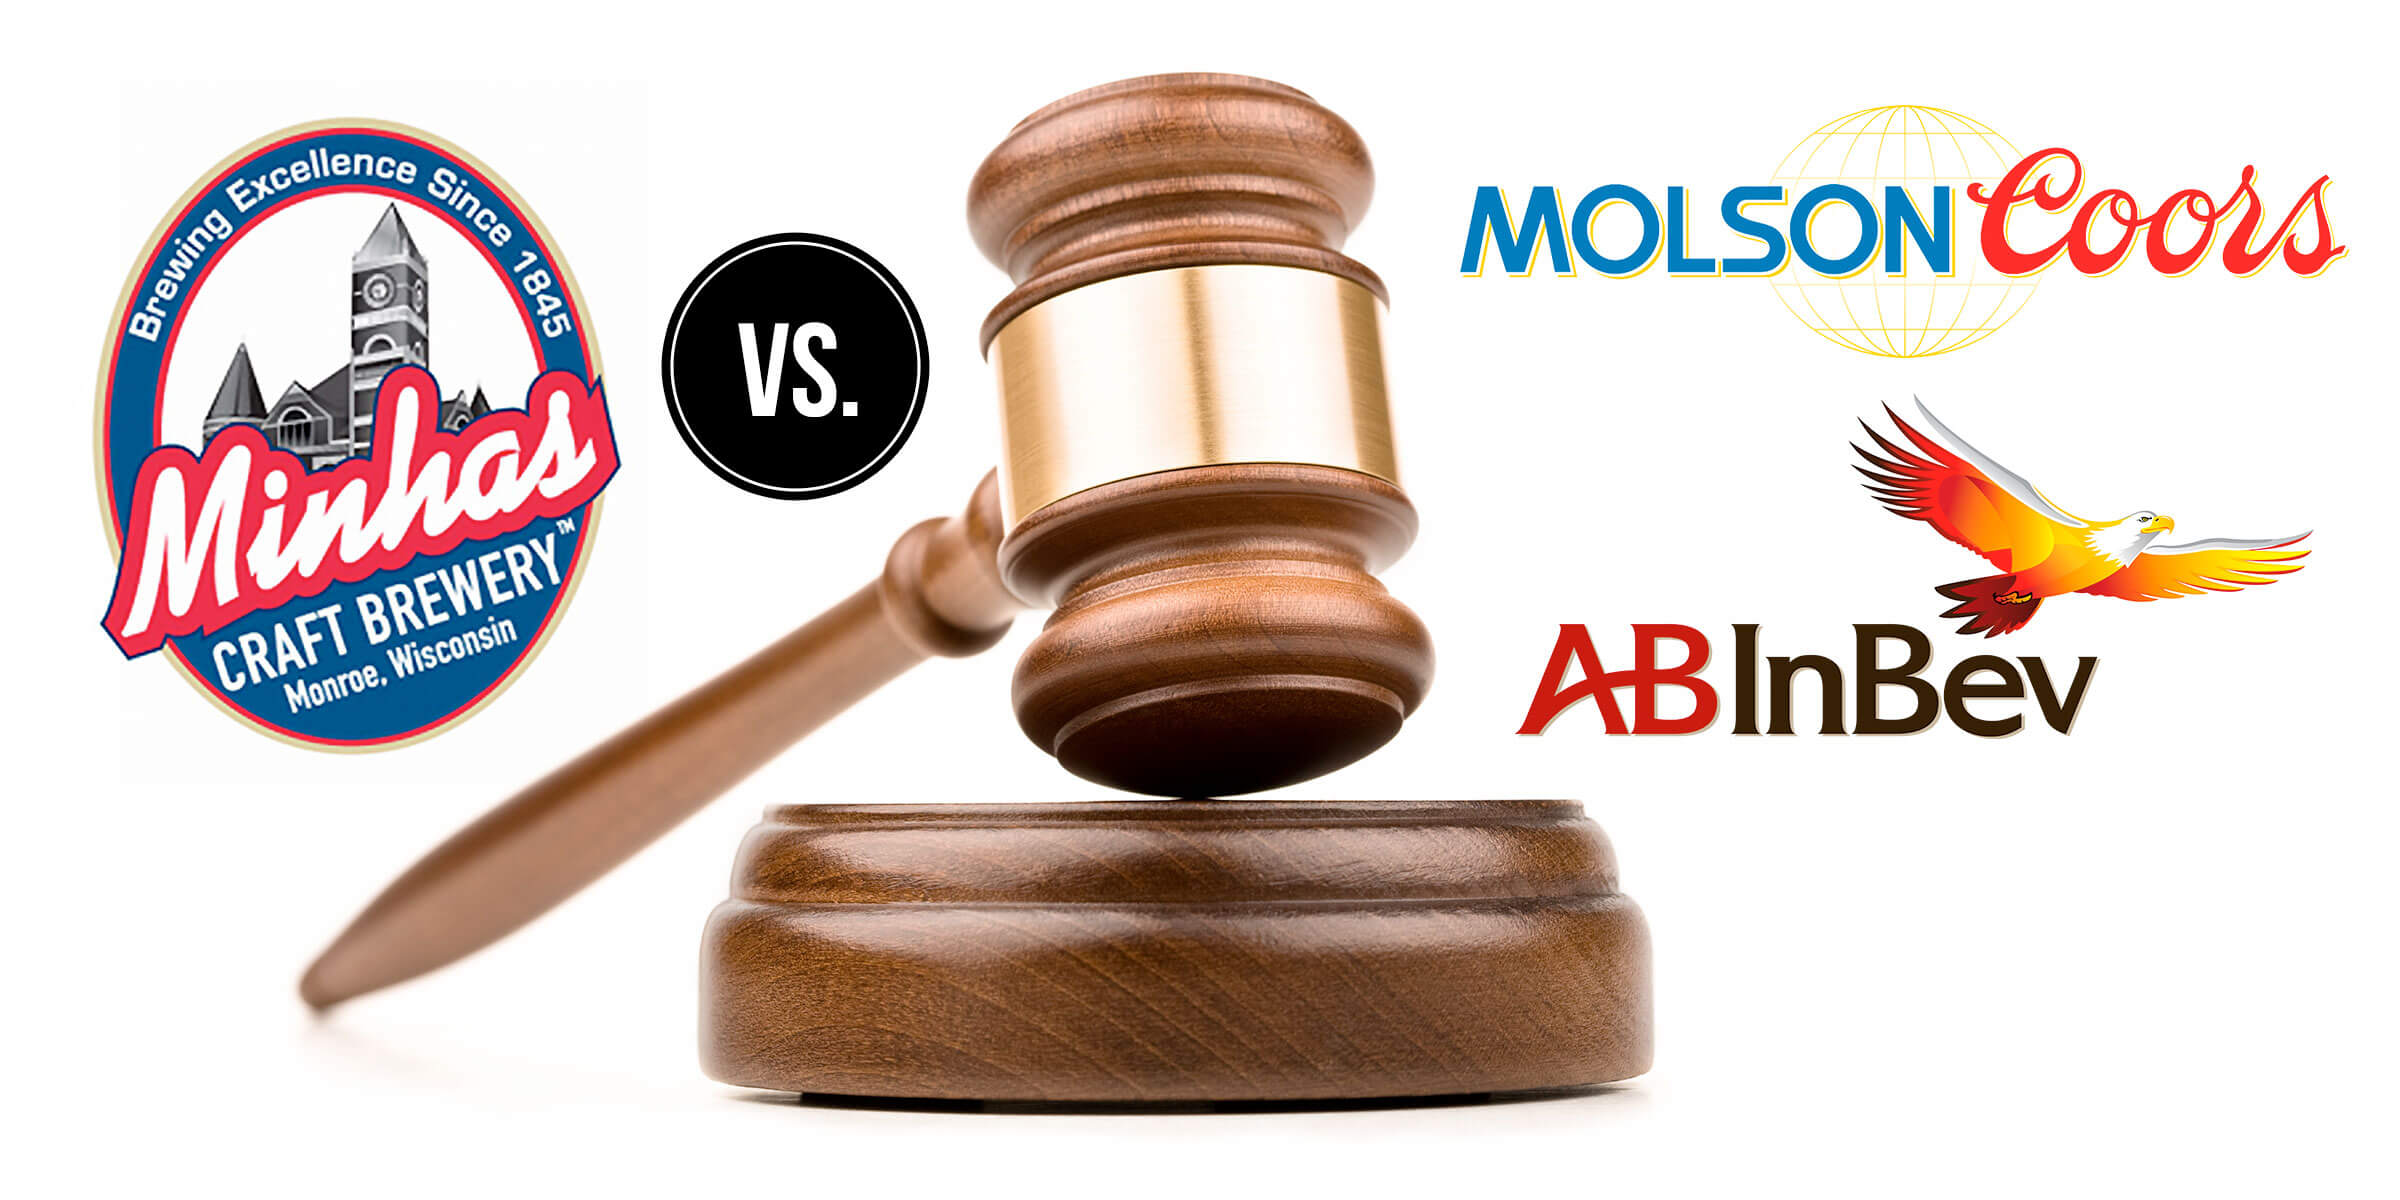 The U.S. Court of Appeals for the Seventh Circuit revived a lawsuit by Mountain Crest SRL claiming Anheuser-Busch InBev and Molson Coors restricted beer imports from the U.S. to Canada.